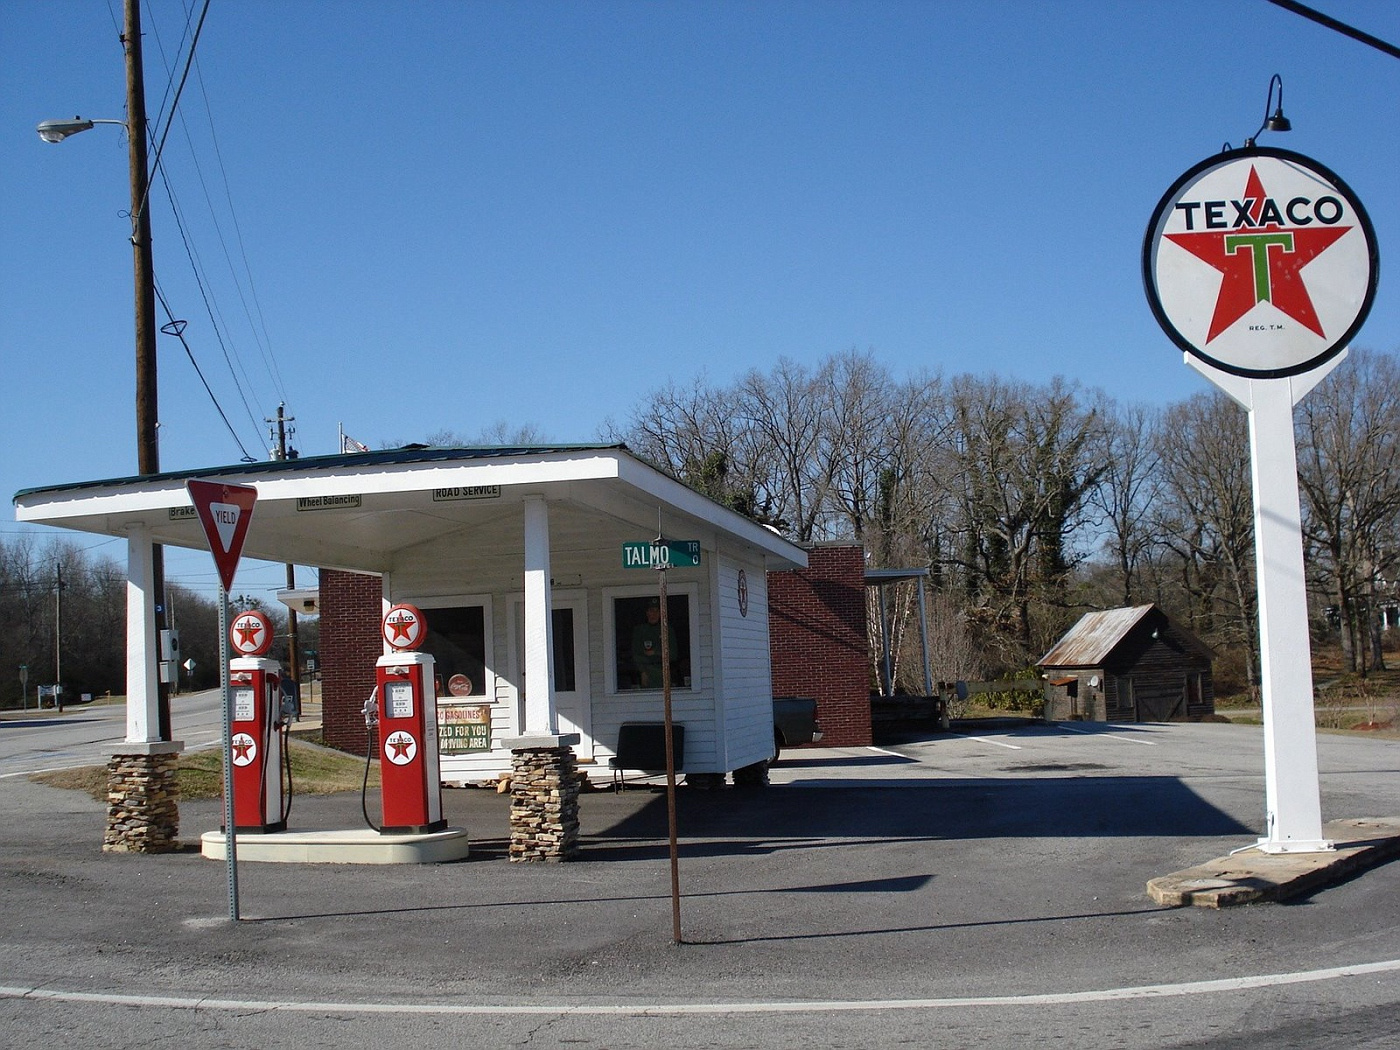 Photo Old Texaco Gas Station Northeat Ga Old Gas Stations Album Tinwolf Fotki Com Photo And Video Sharing Made Easy